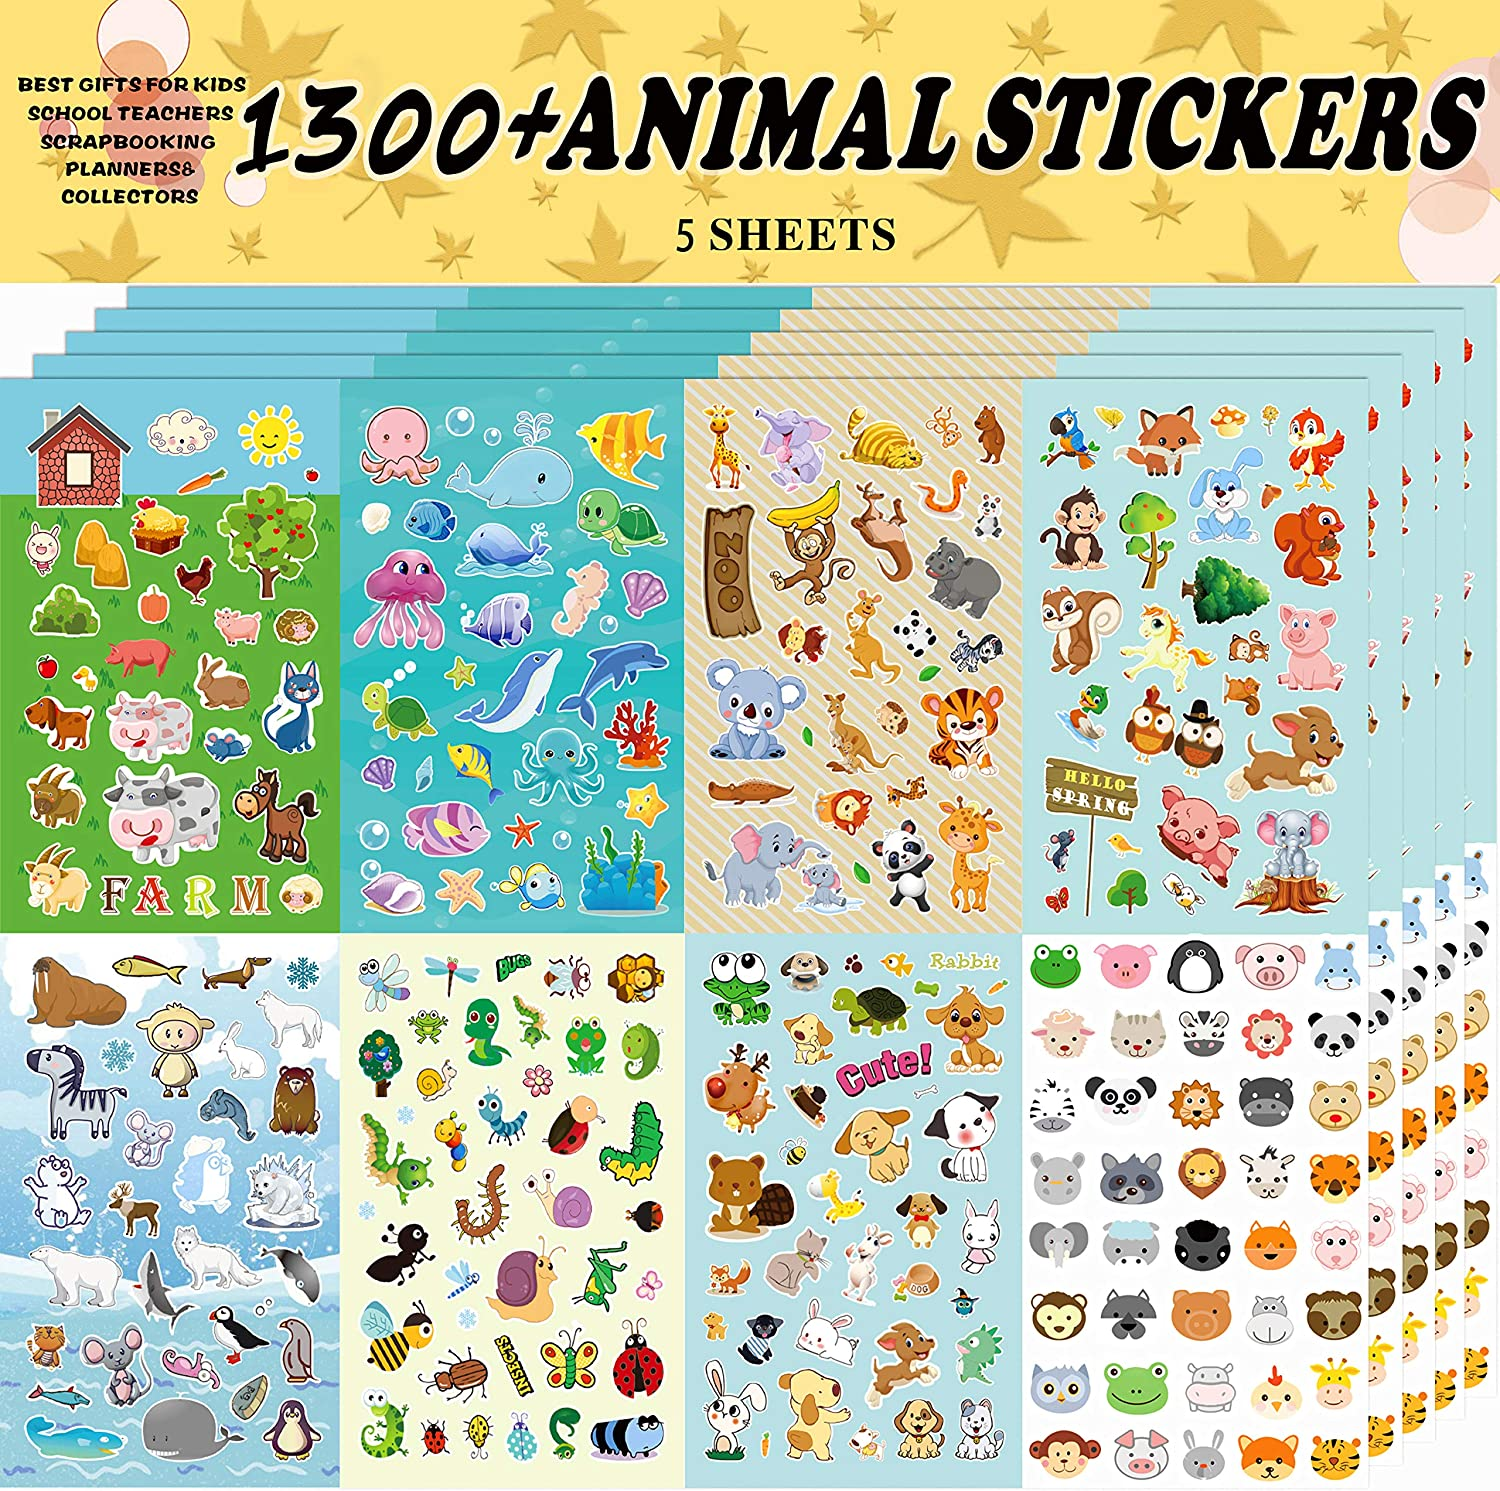 Sinceroduct Animal Stickers, Stickers for Kids Assortment Set 1300 PCS, 8 Themes Collection for Children, Teacher, Parent, Grandparent, Kids,Craft,School, Scrapbooking,Present Idea for Children,Chris